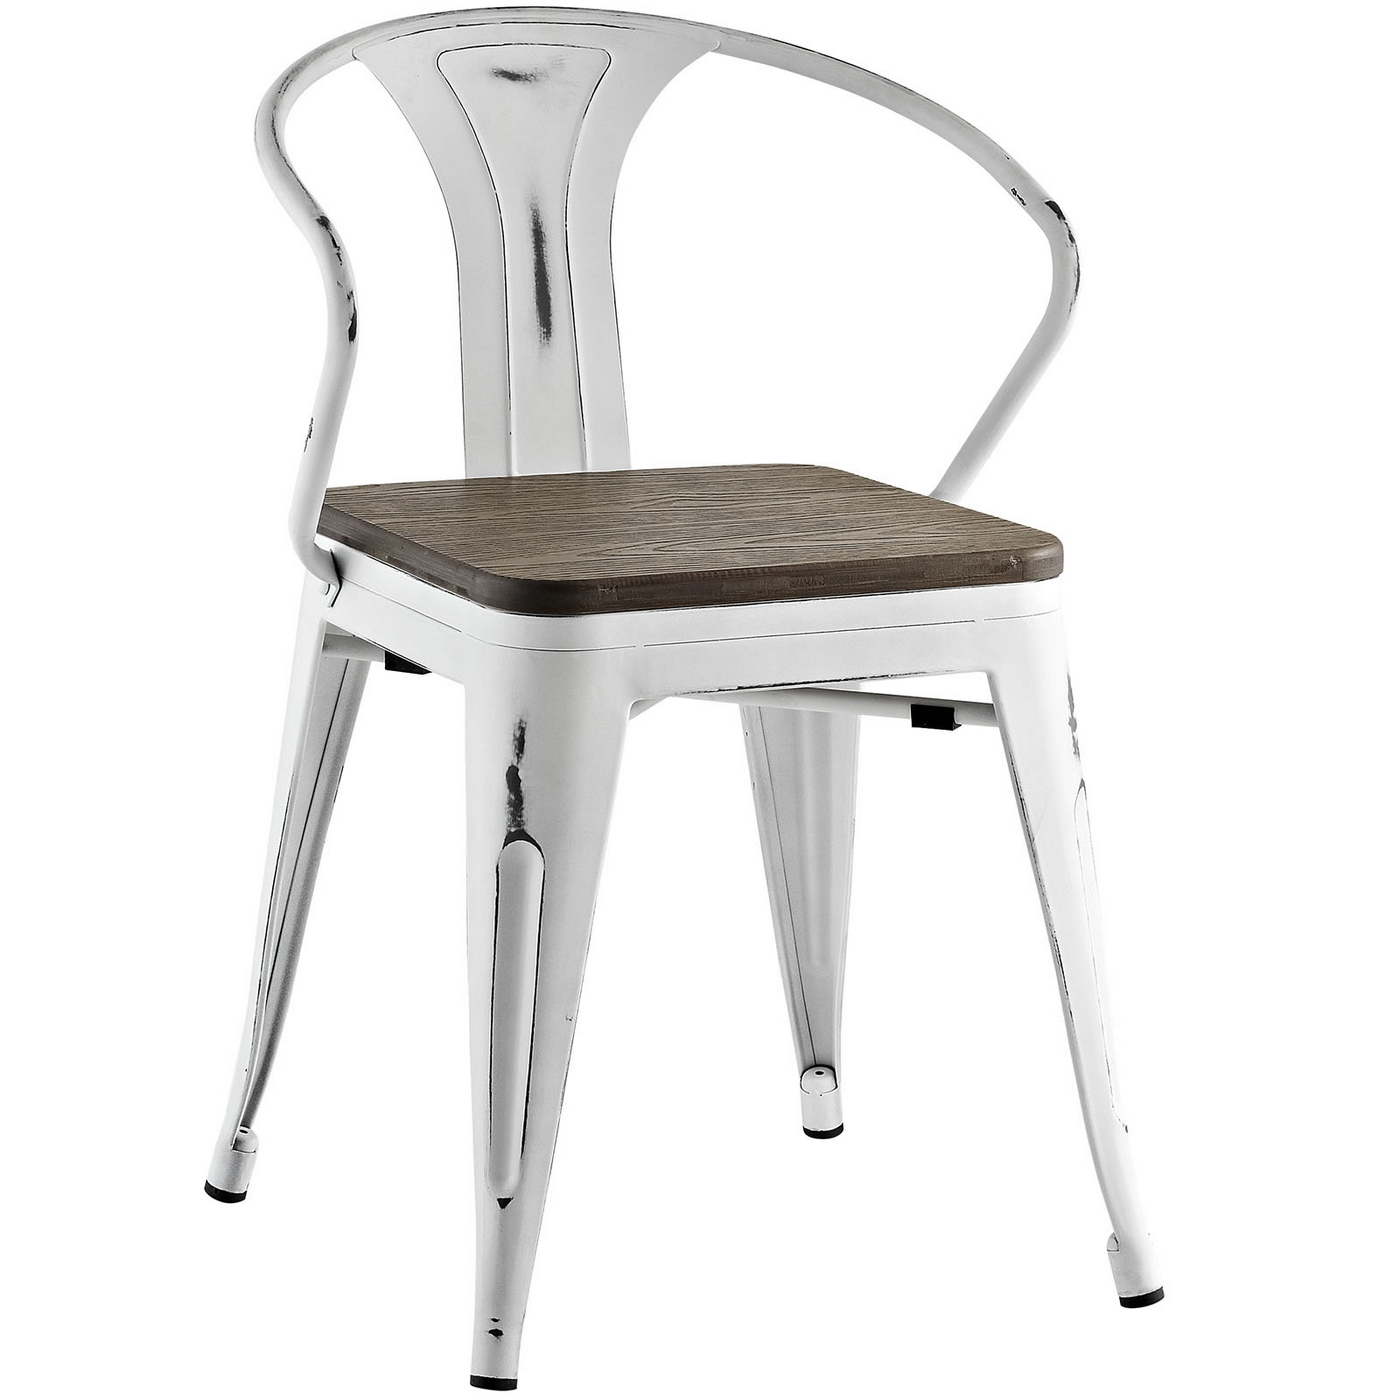 Promenade vintage arm chair w wooden seat distressed for Arm chair white